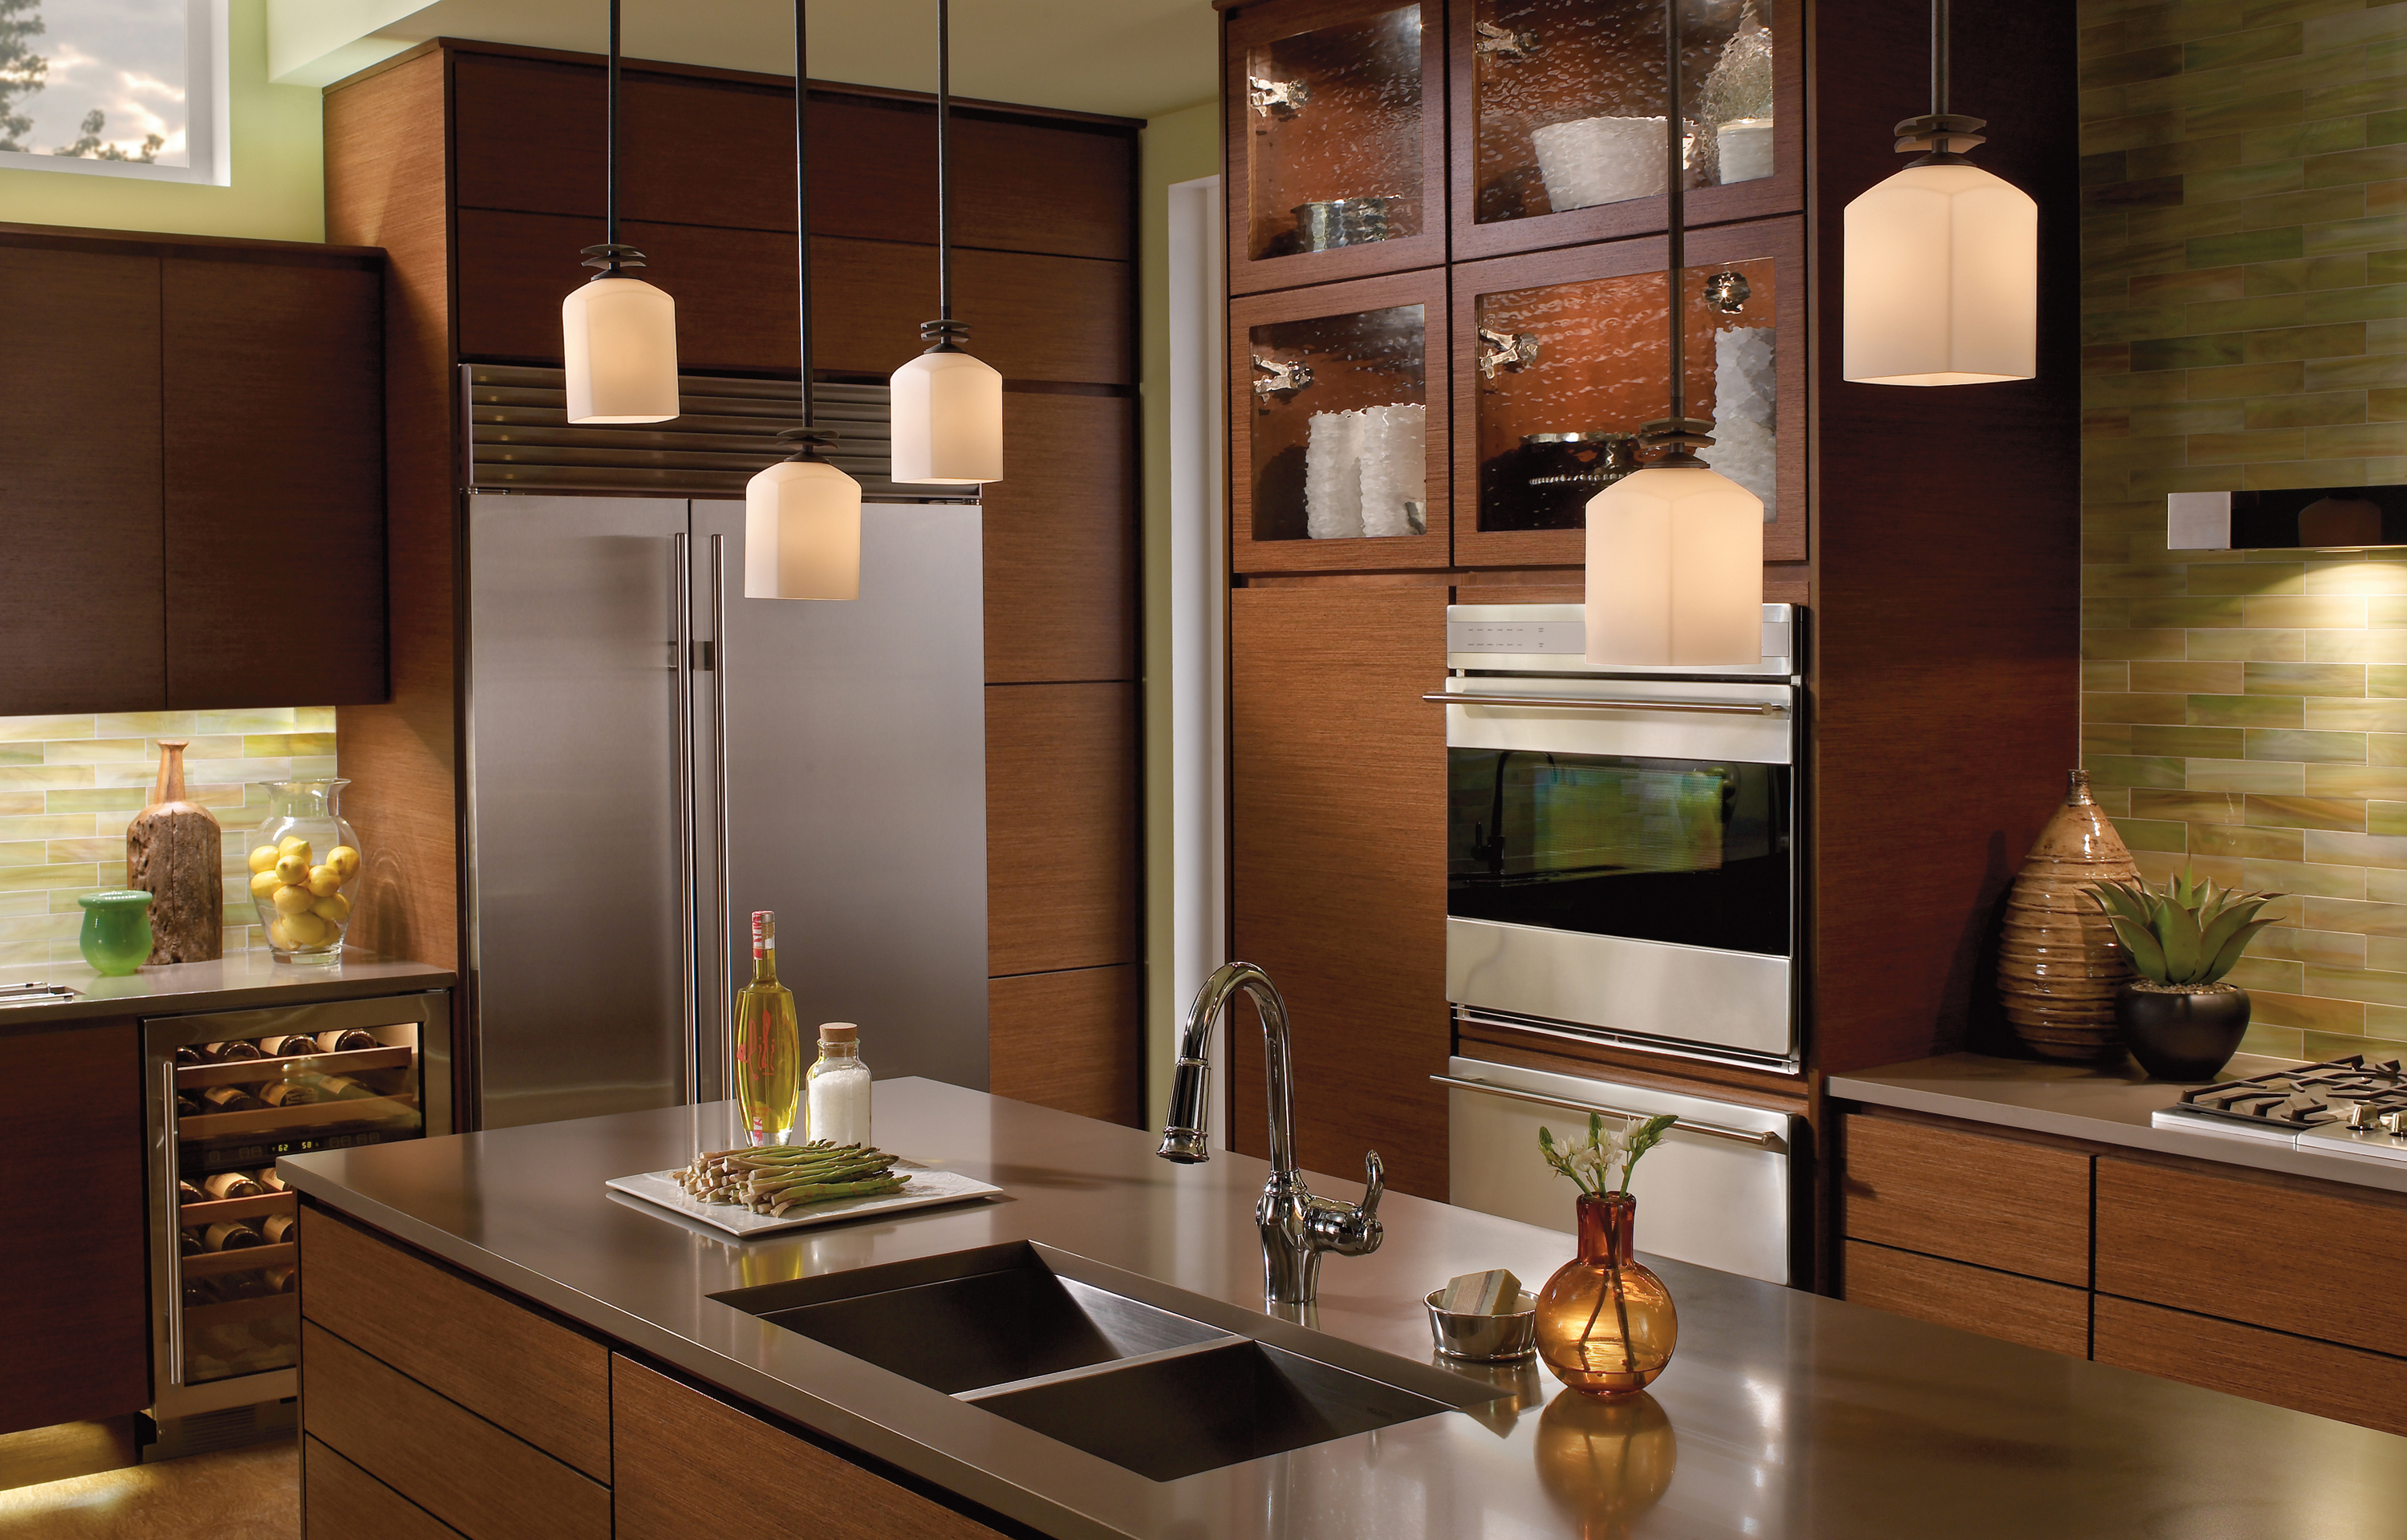 kitchen furniture mini pendant lights over dining room lights hanging light fixtures pendant lights kitchen t5 light fixtures over kitchen island pendant lighting pendant kitchen light fixtures pendant l